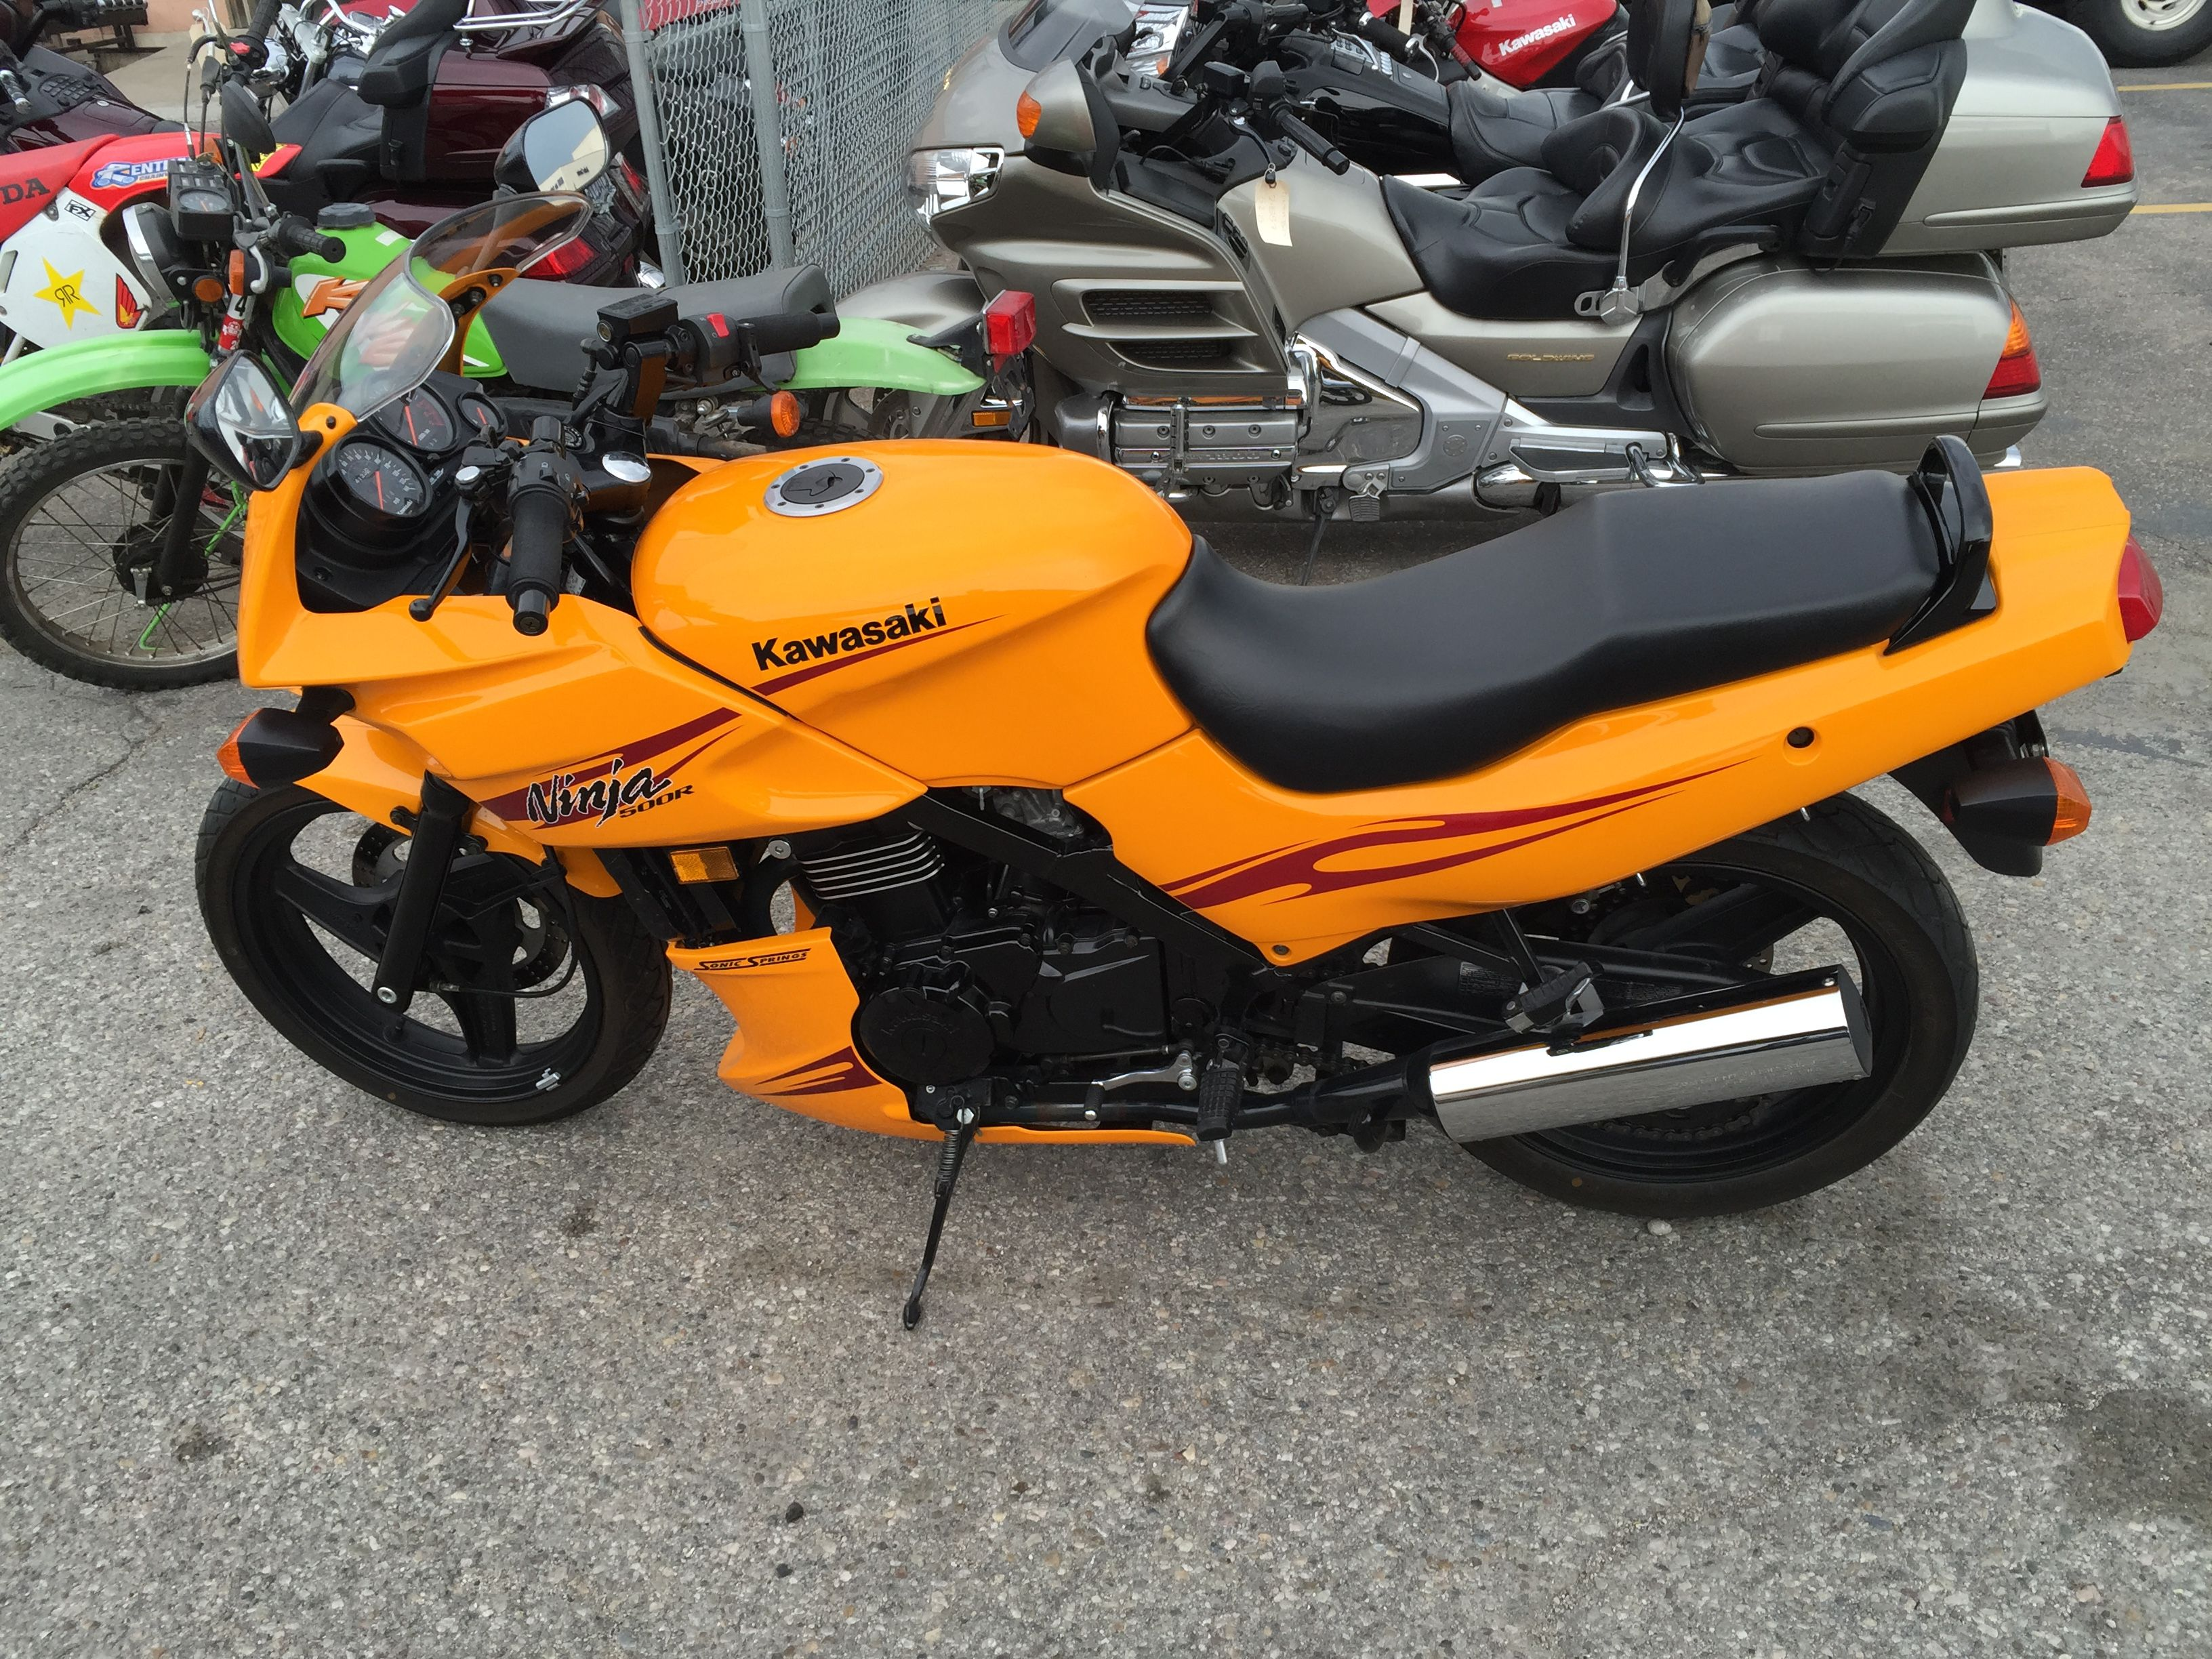 2007 Kawasaki Ninja 500r Aka Ex500  In Solar Yellow  Looks Orange To Me